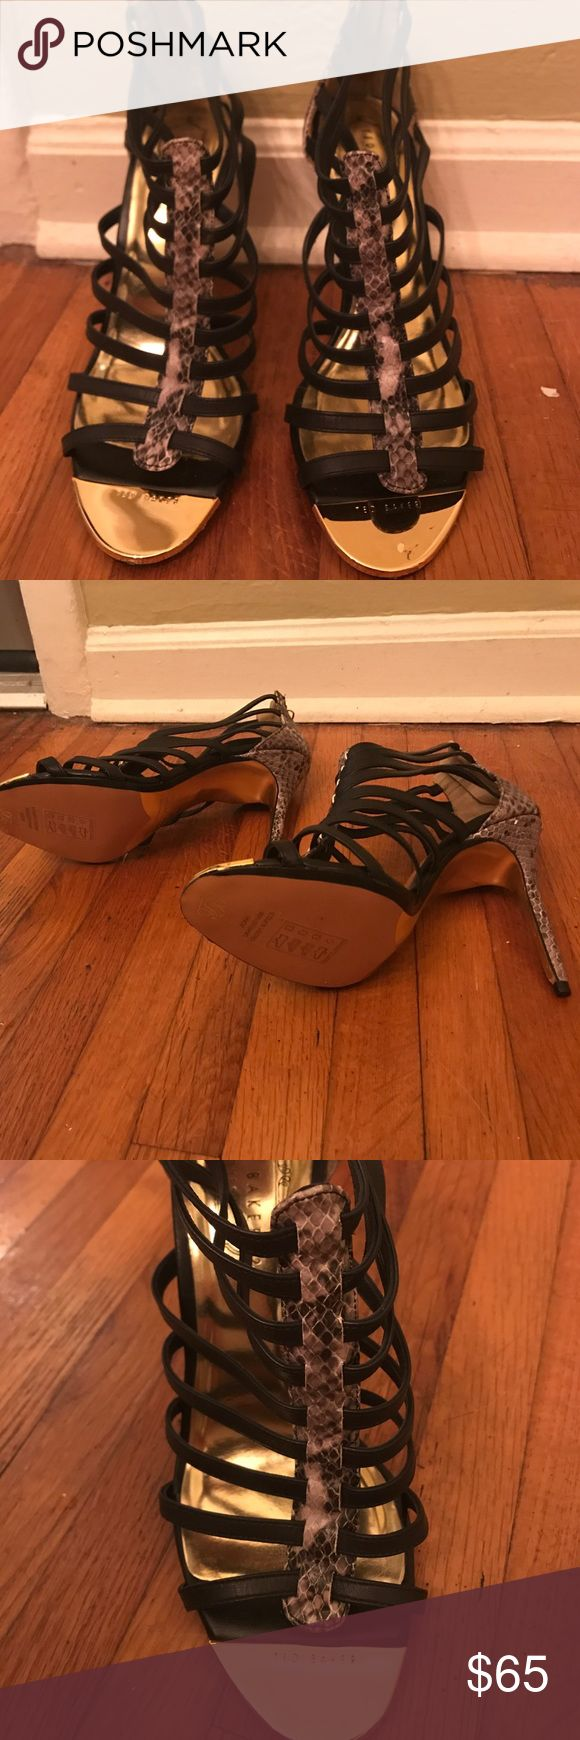 Ted Baker never worn strappy heels Never worn Ted Baker Heels with black straps contrasted with grey snakeskin on gold soles and heel. Shoes would be perfect for a night out or even to dress up a pair of jeans! Ted Baker Shoes Heels